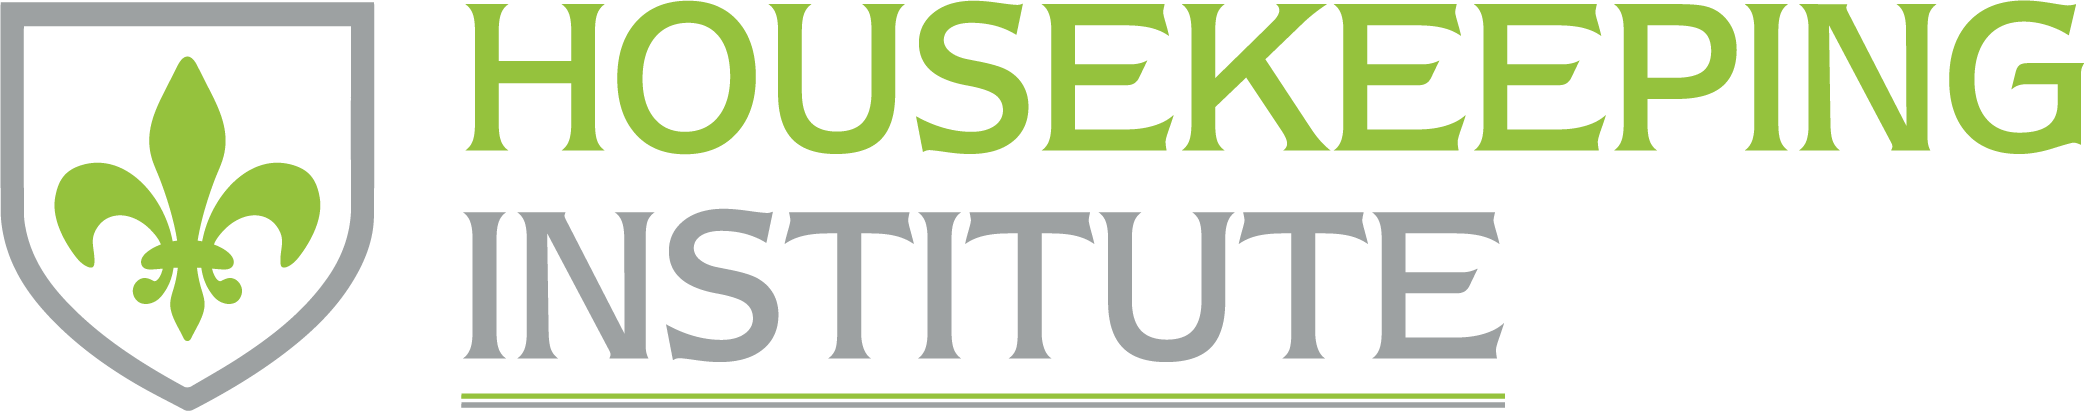 Houskeeping-Training-Logo